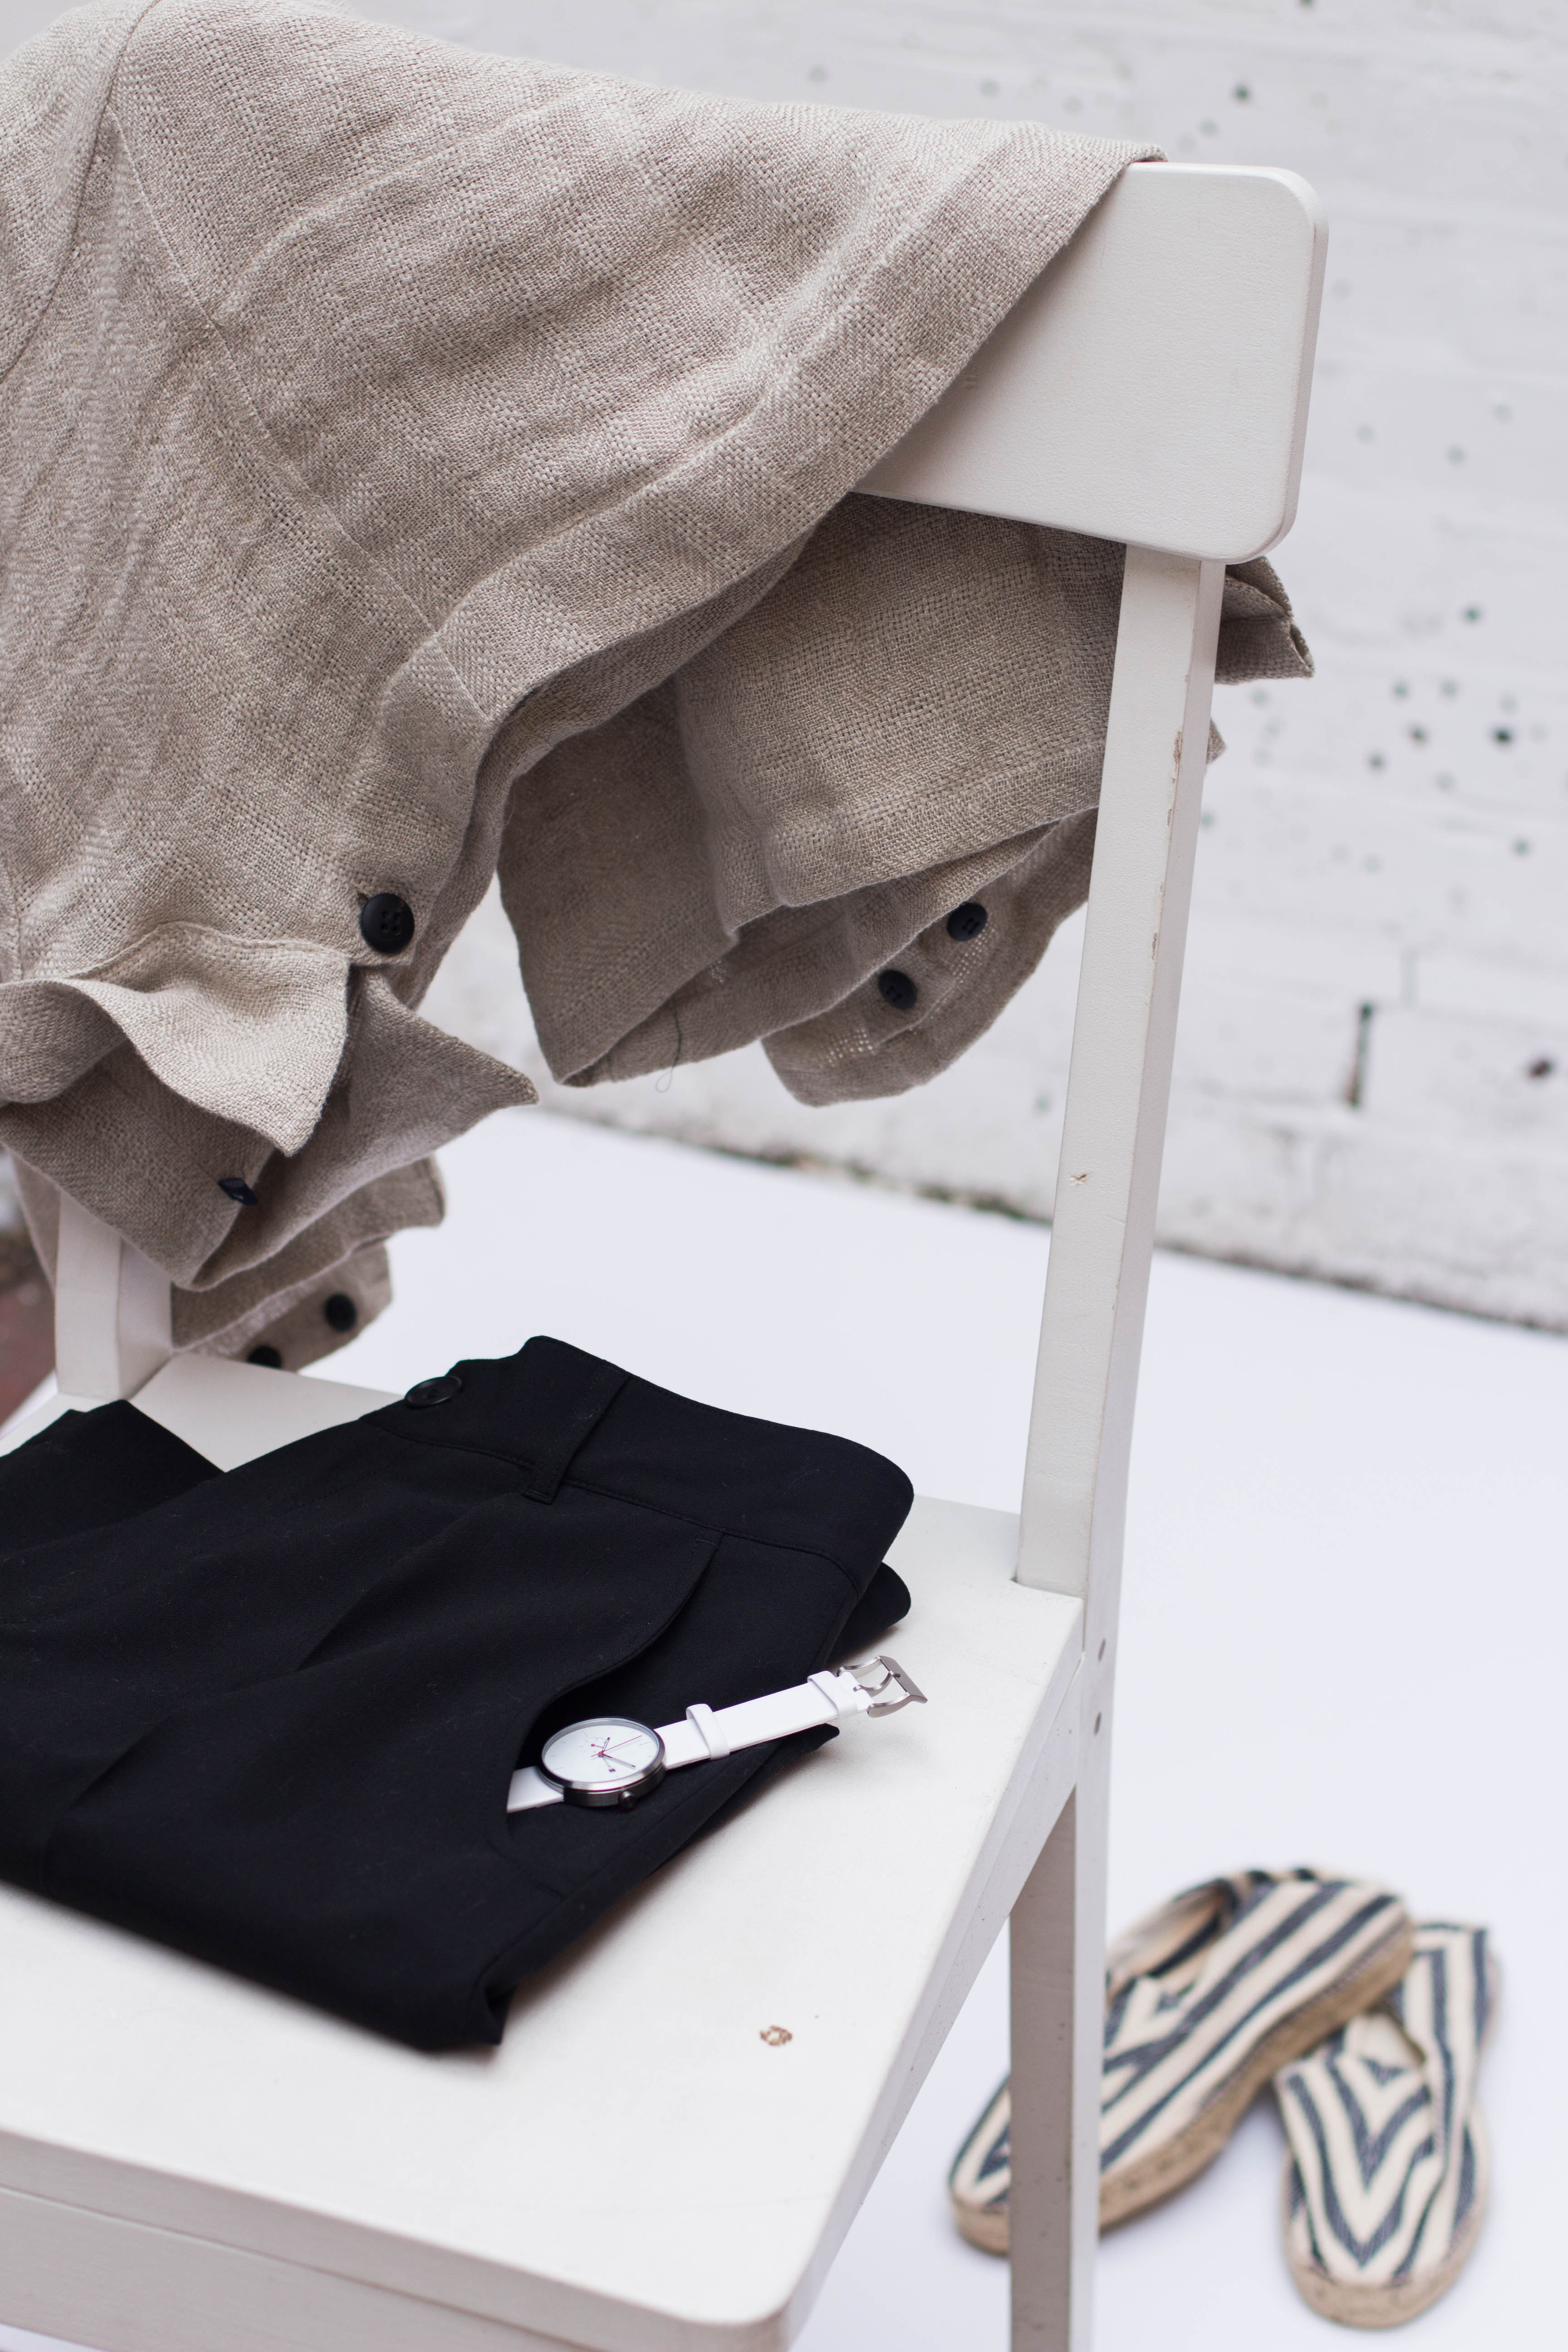 gray textile hanging on white wooden chair